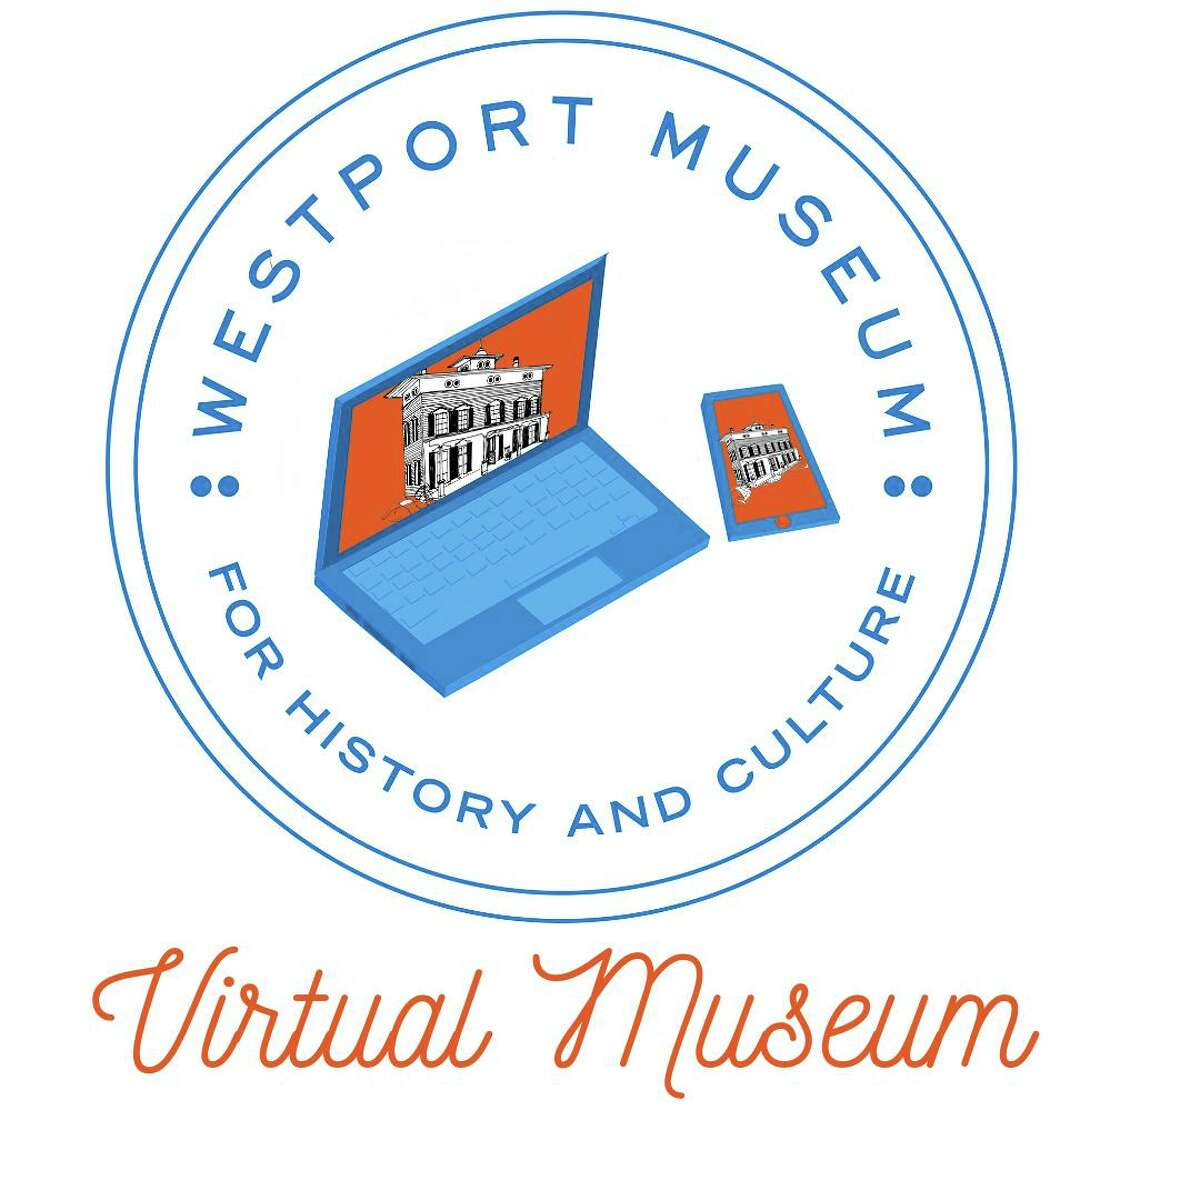 The Westport Museum of History and Culture has announced it will go virtual after closing due to the coronavirus pandemic.